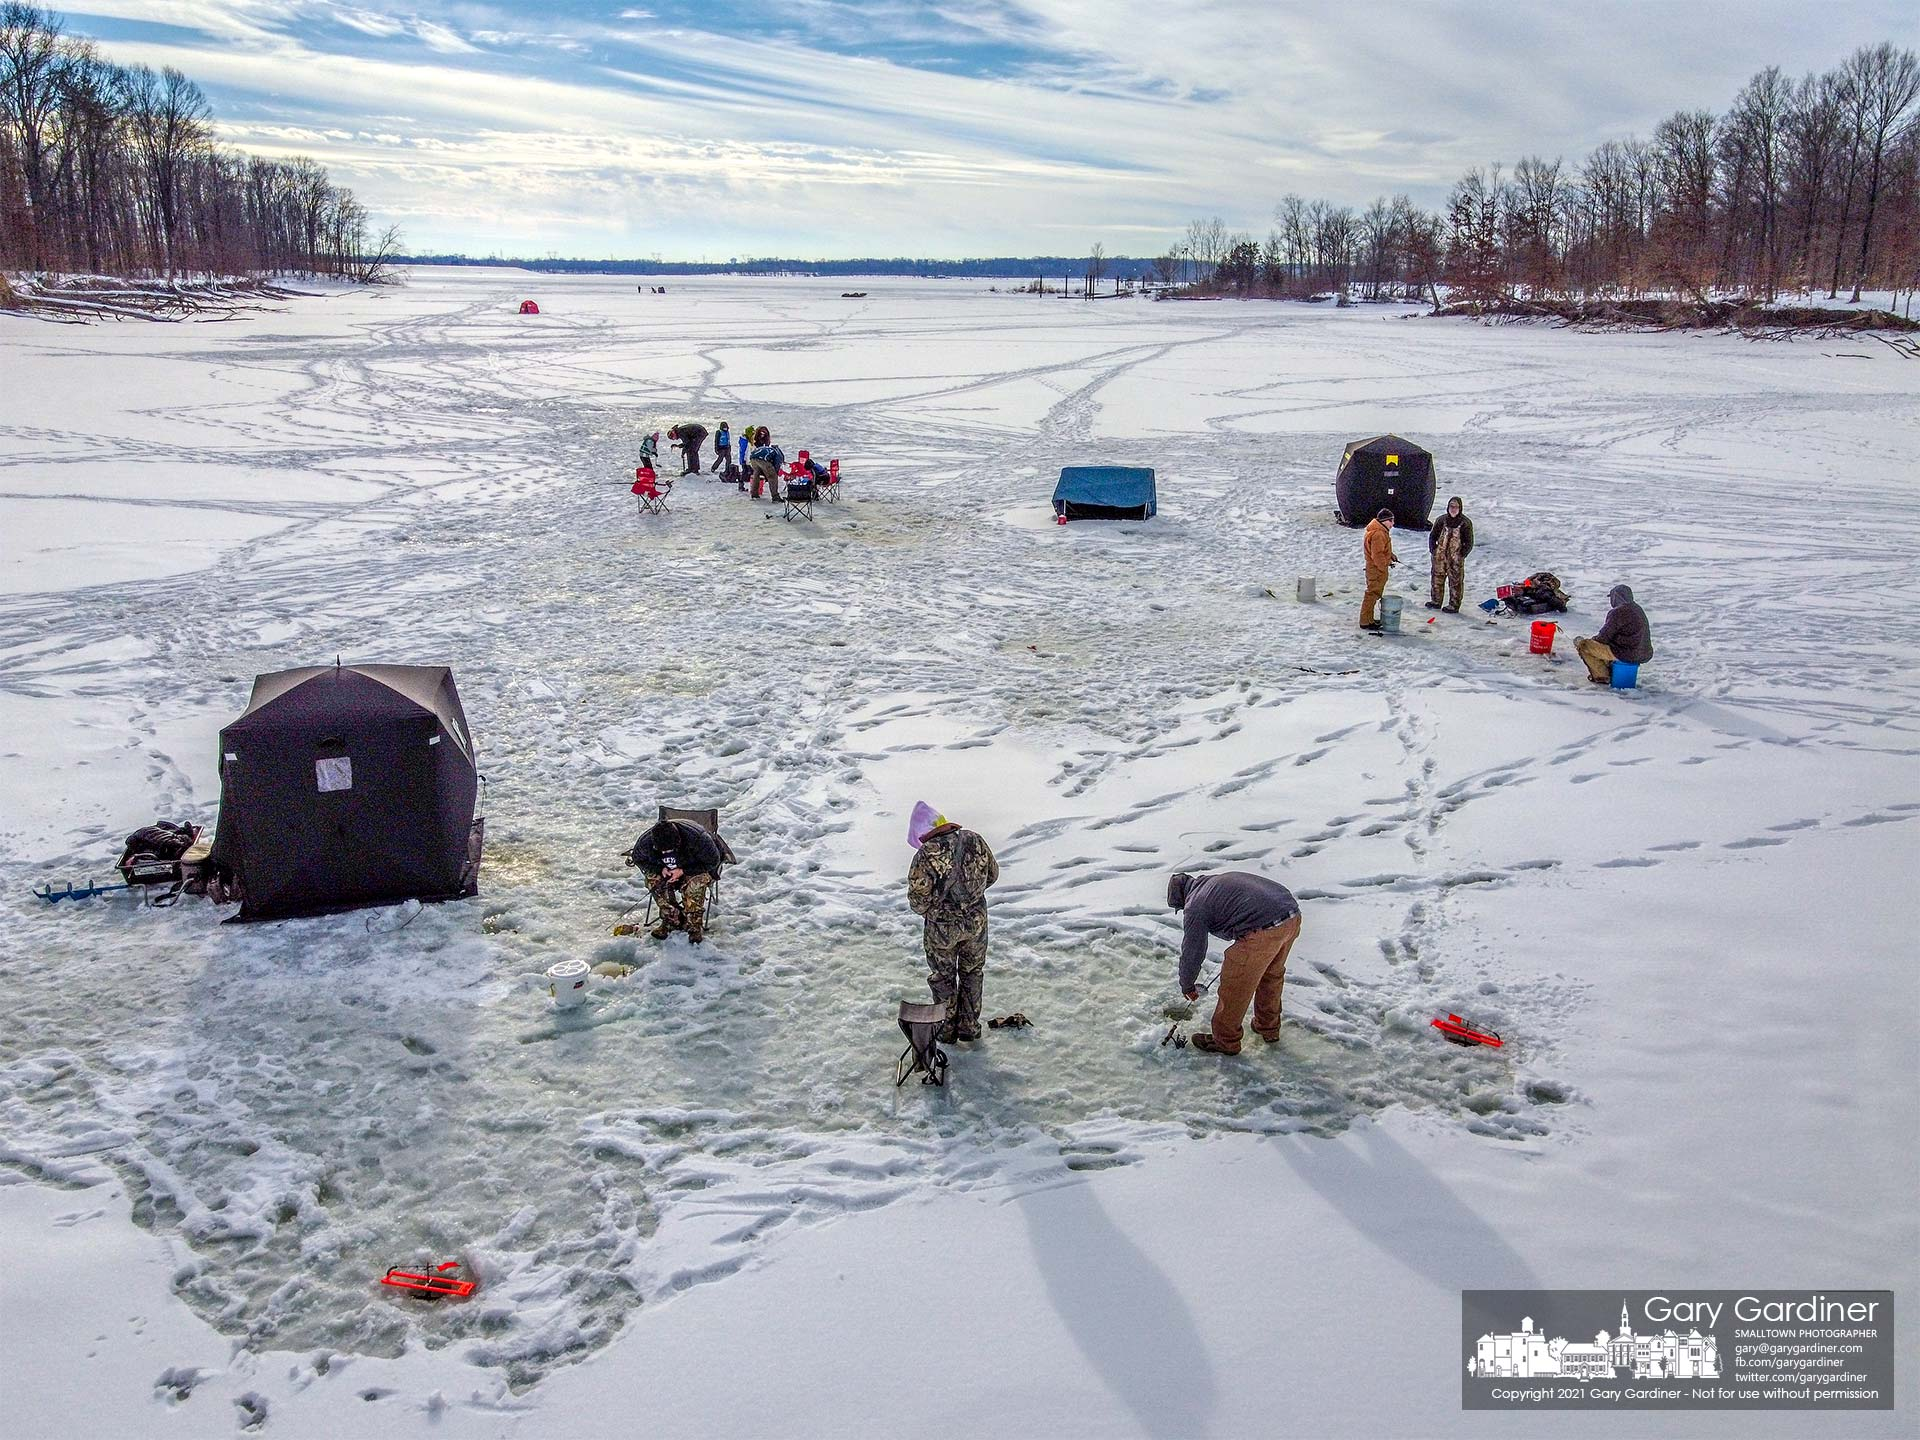 A group of anglers sets their lines and tents on thick ice on a small lagoon on Alum Creel Lake on Sunday as temperatures are forecast to warm up during the week. My Final Photo for Feb. 21, 2021.